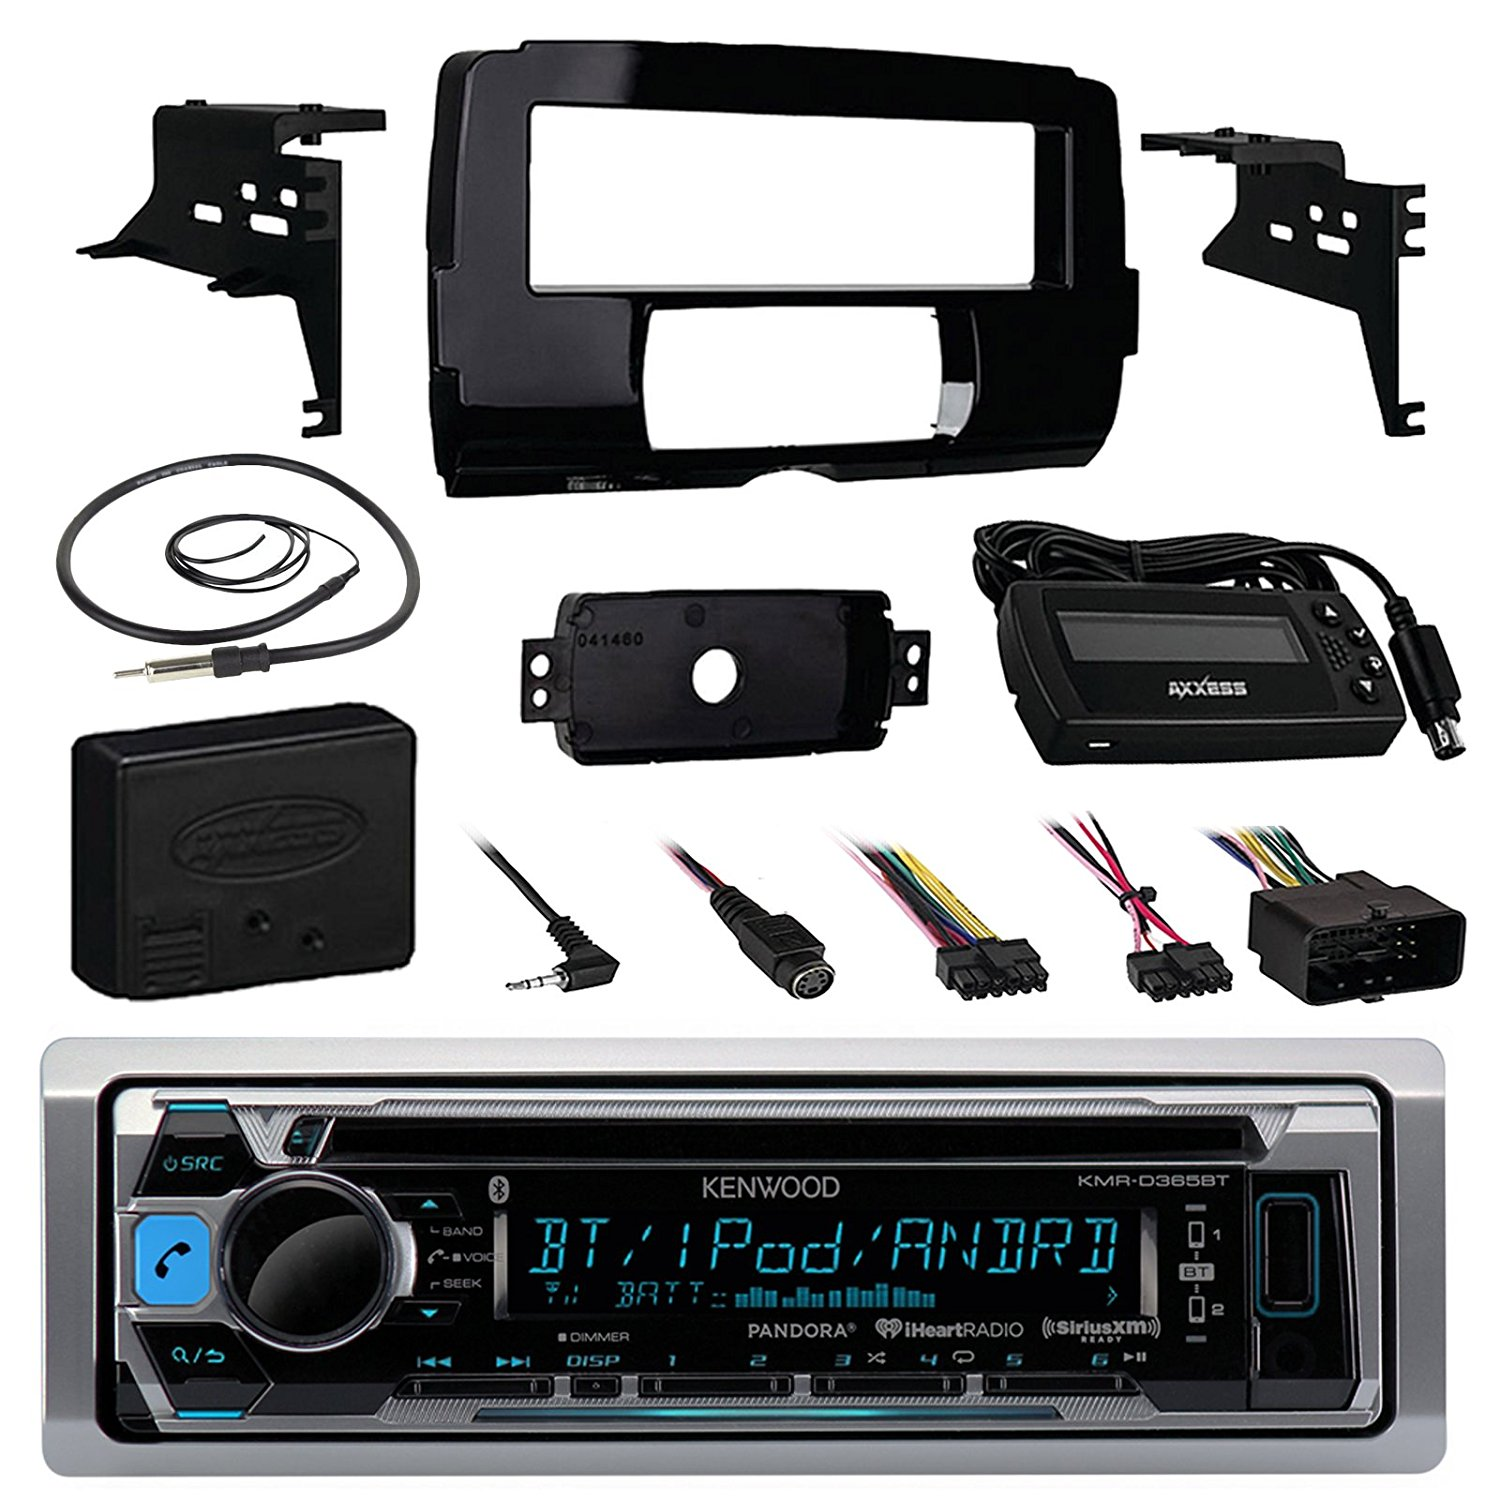 "Audio Bundle For 2014 and Up Harley - Kenwood KMRD372BT Marine CD MP3 iPod Bluetooth Stereo Receiver Bundle Combo With Install Dash Kit, Handle Bar Controller for Motorcycle, Enrock 22"" Radio Antenna"